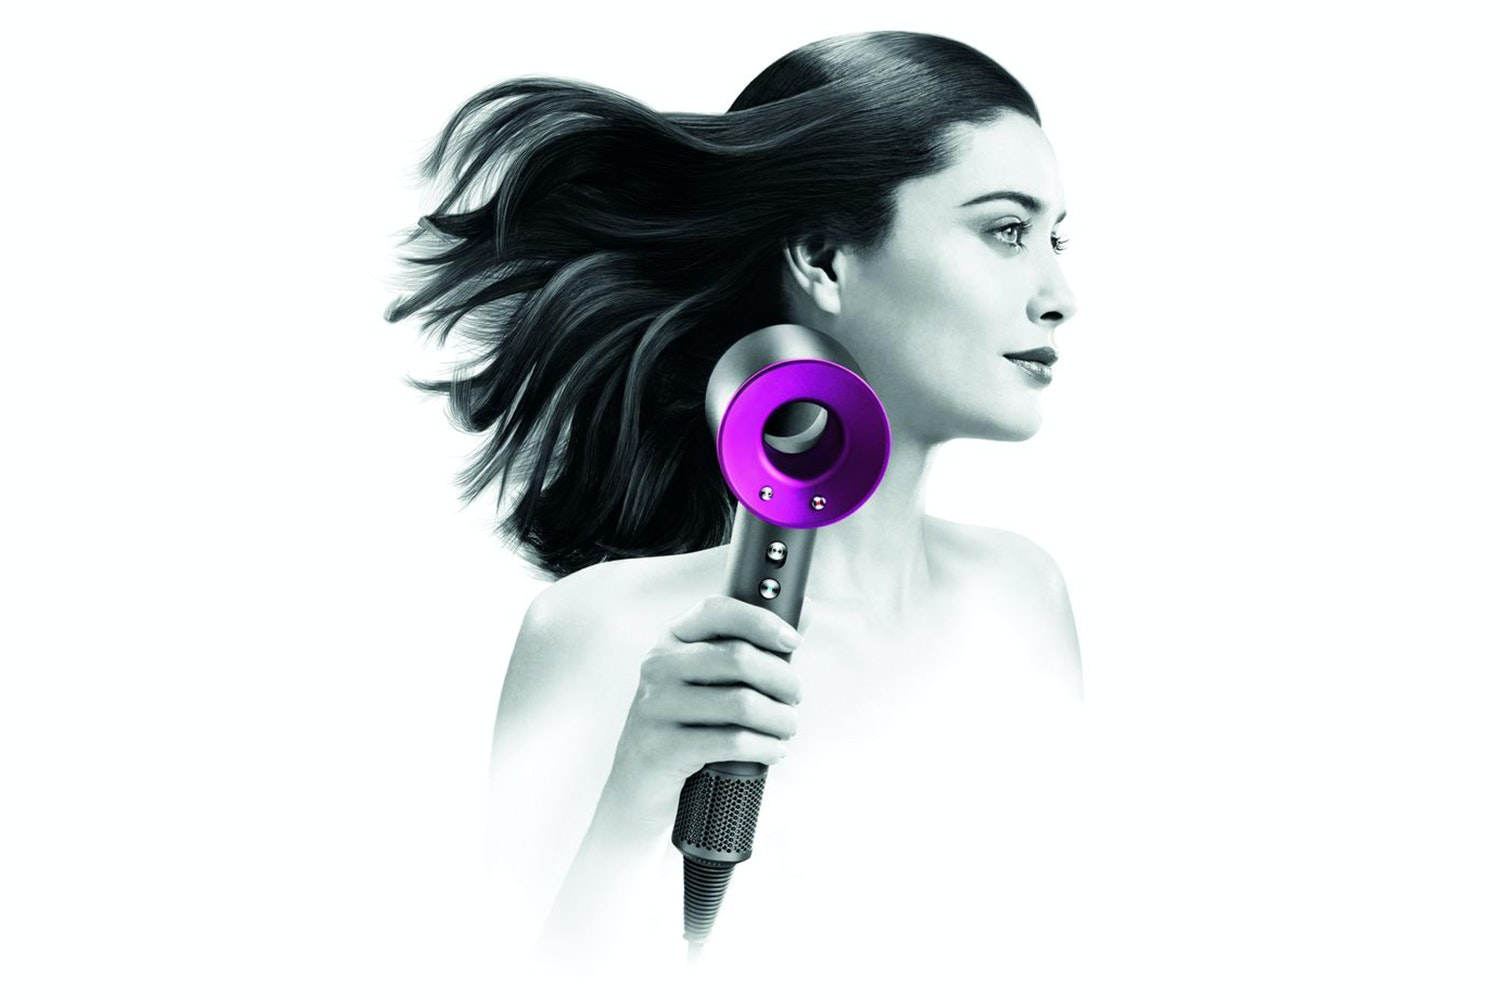 Dyson Supersonic Hair Dryer | 305959-01